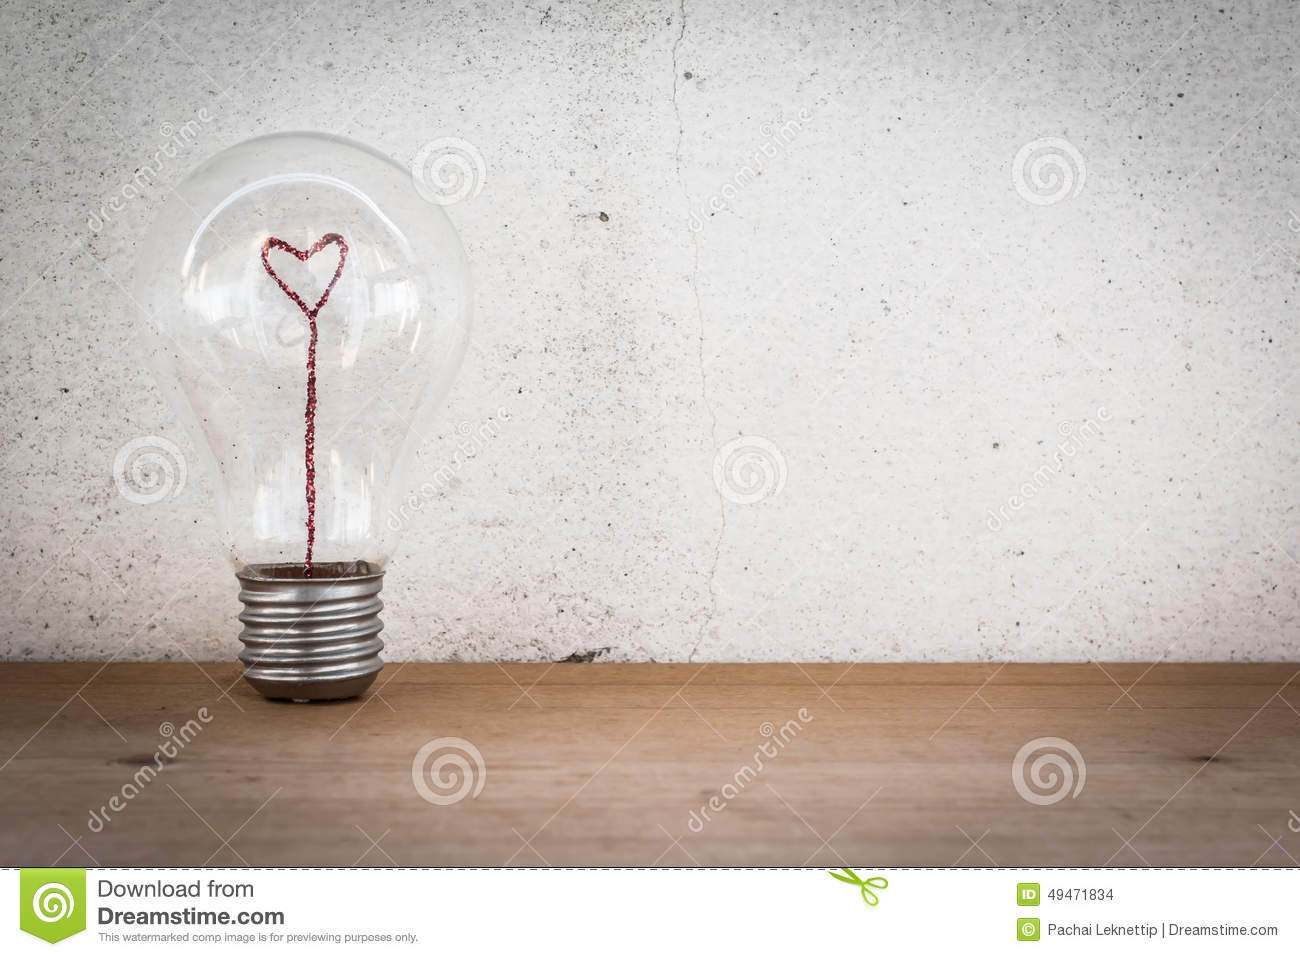 Lightbulb With Heart Shaped Filament Stock Photo - Image: 49471834